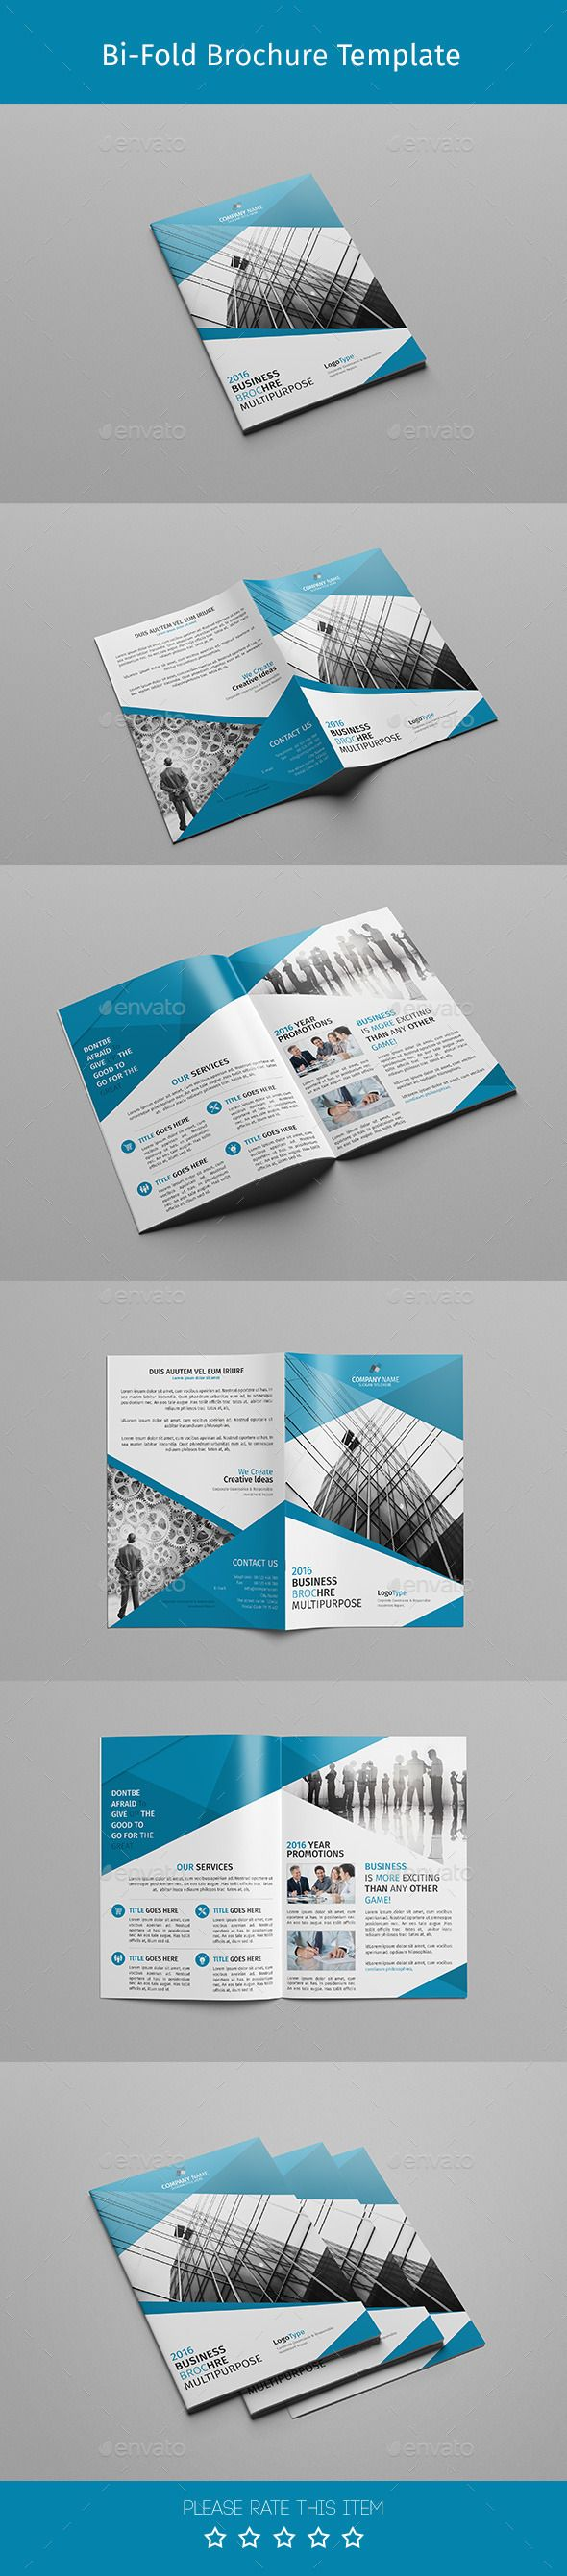 Multipurpose Corporate Bi-fold Brochure Template PSD #design Download…